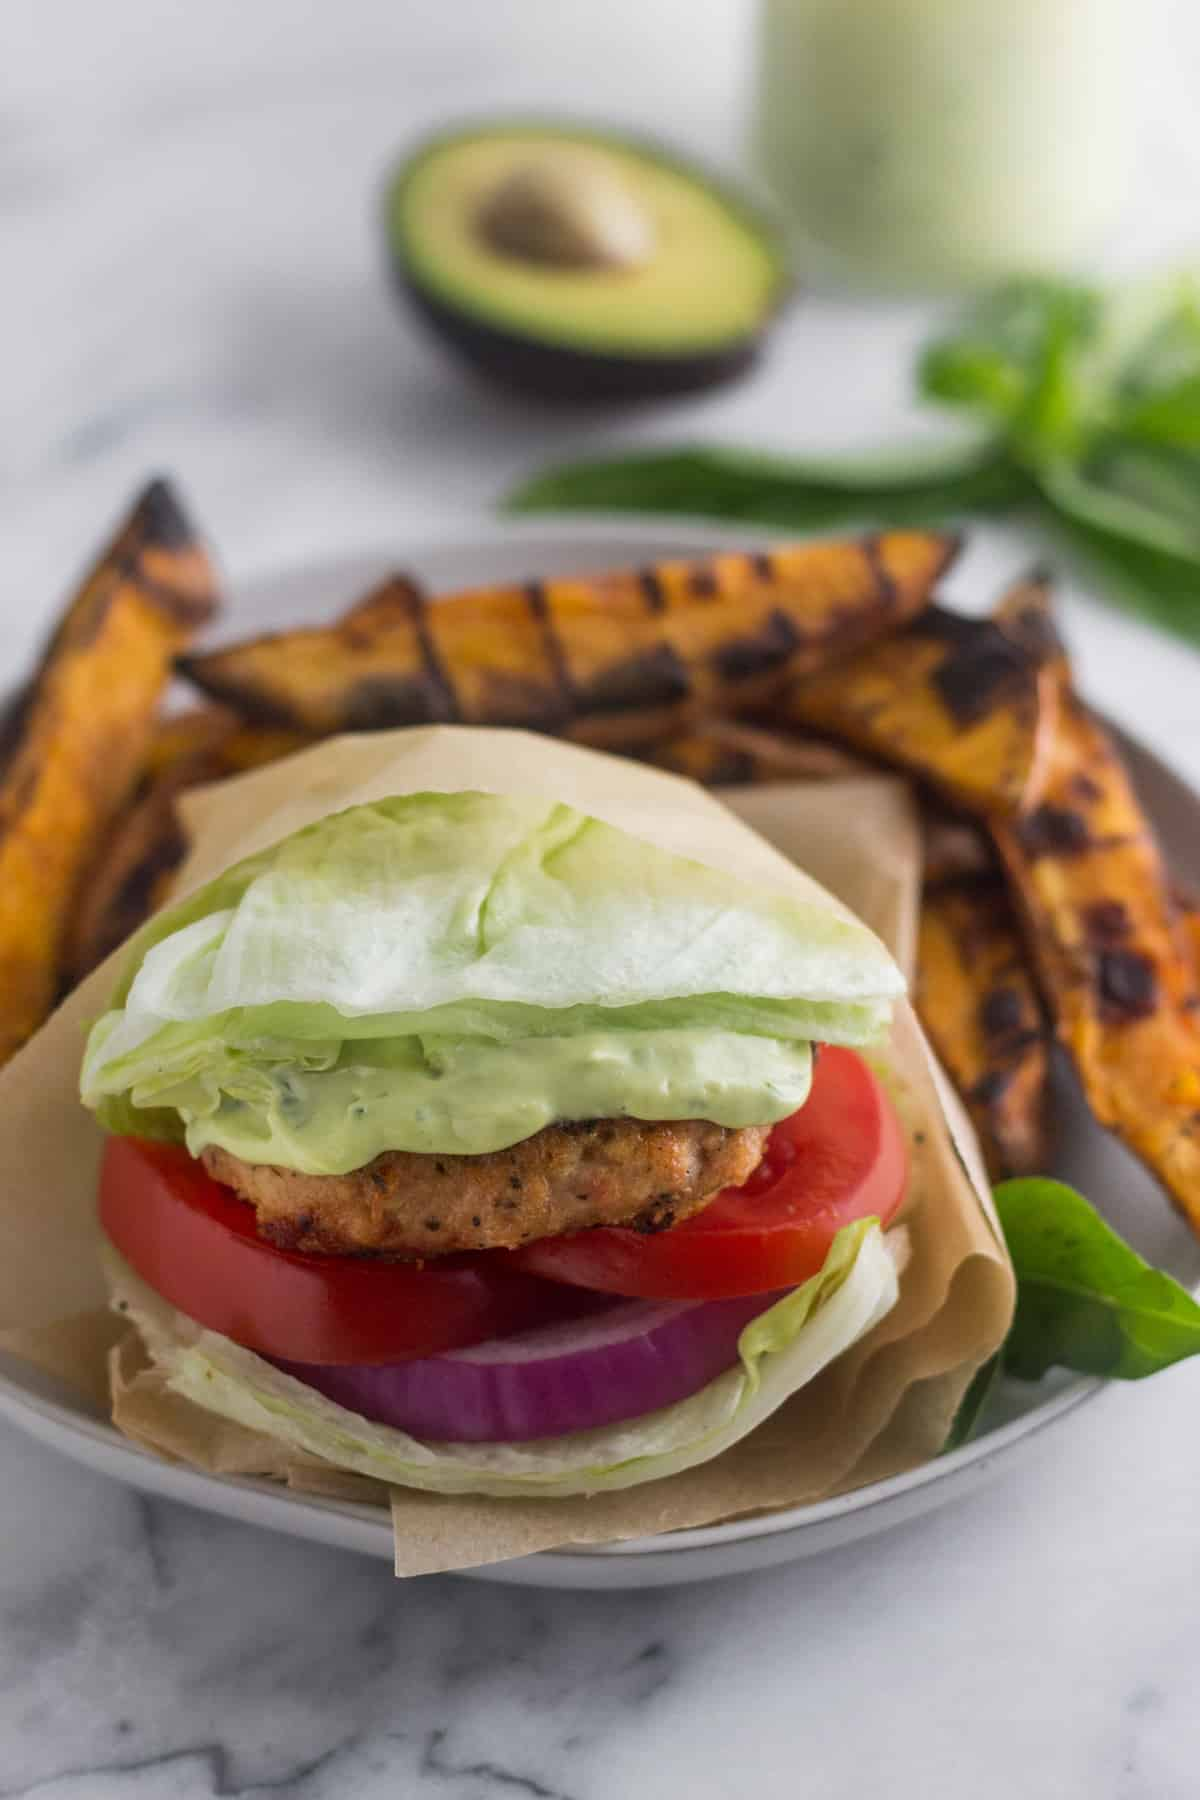 Sun dried tomato chicken burger wrapped in a lettuce wrap on a plate surrounded by grilled sweet potato fries